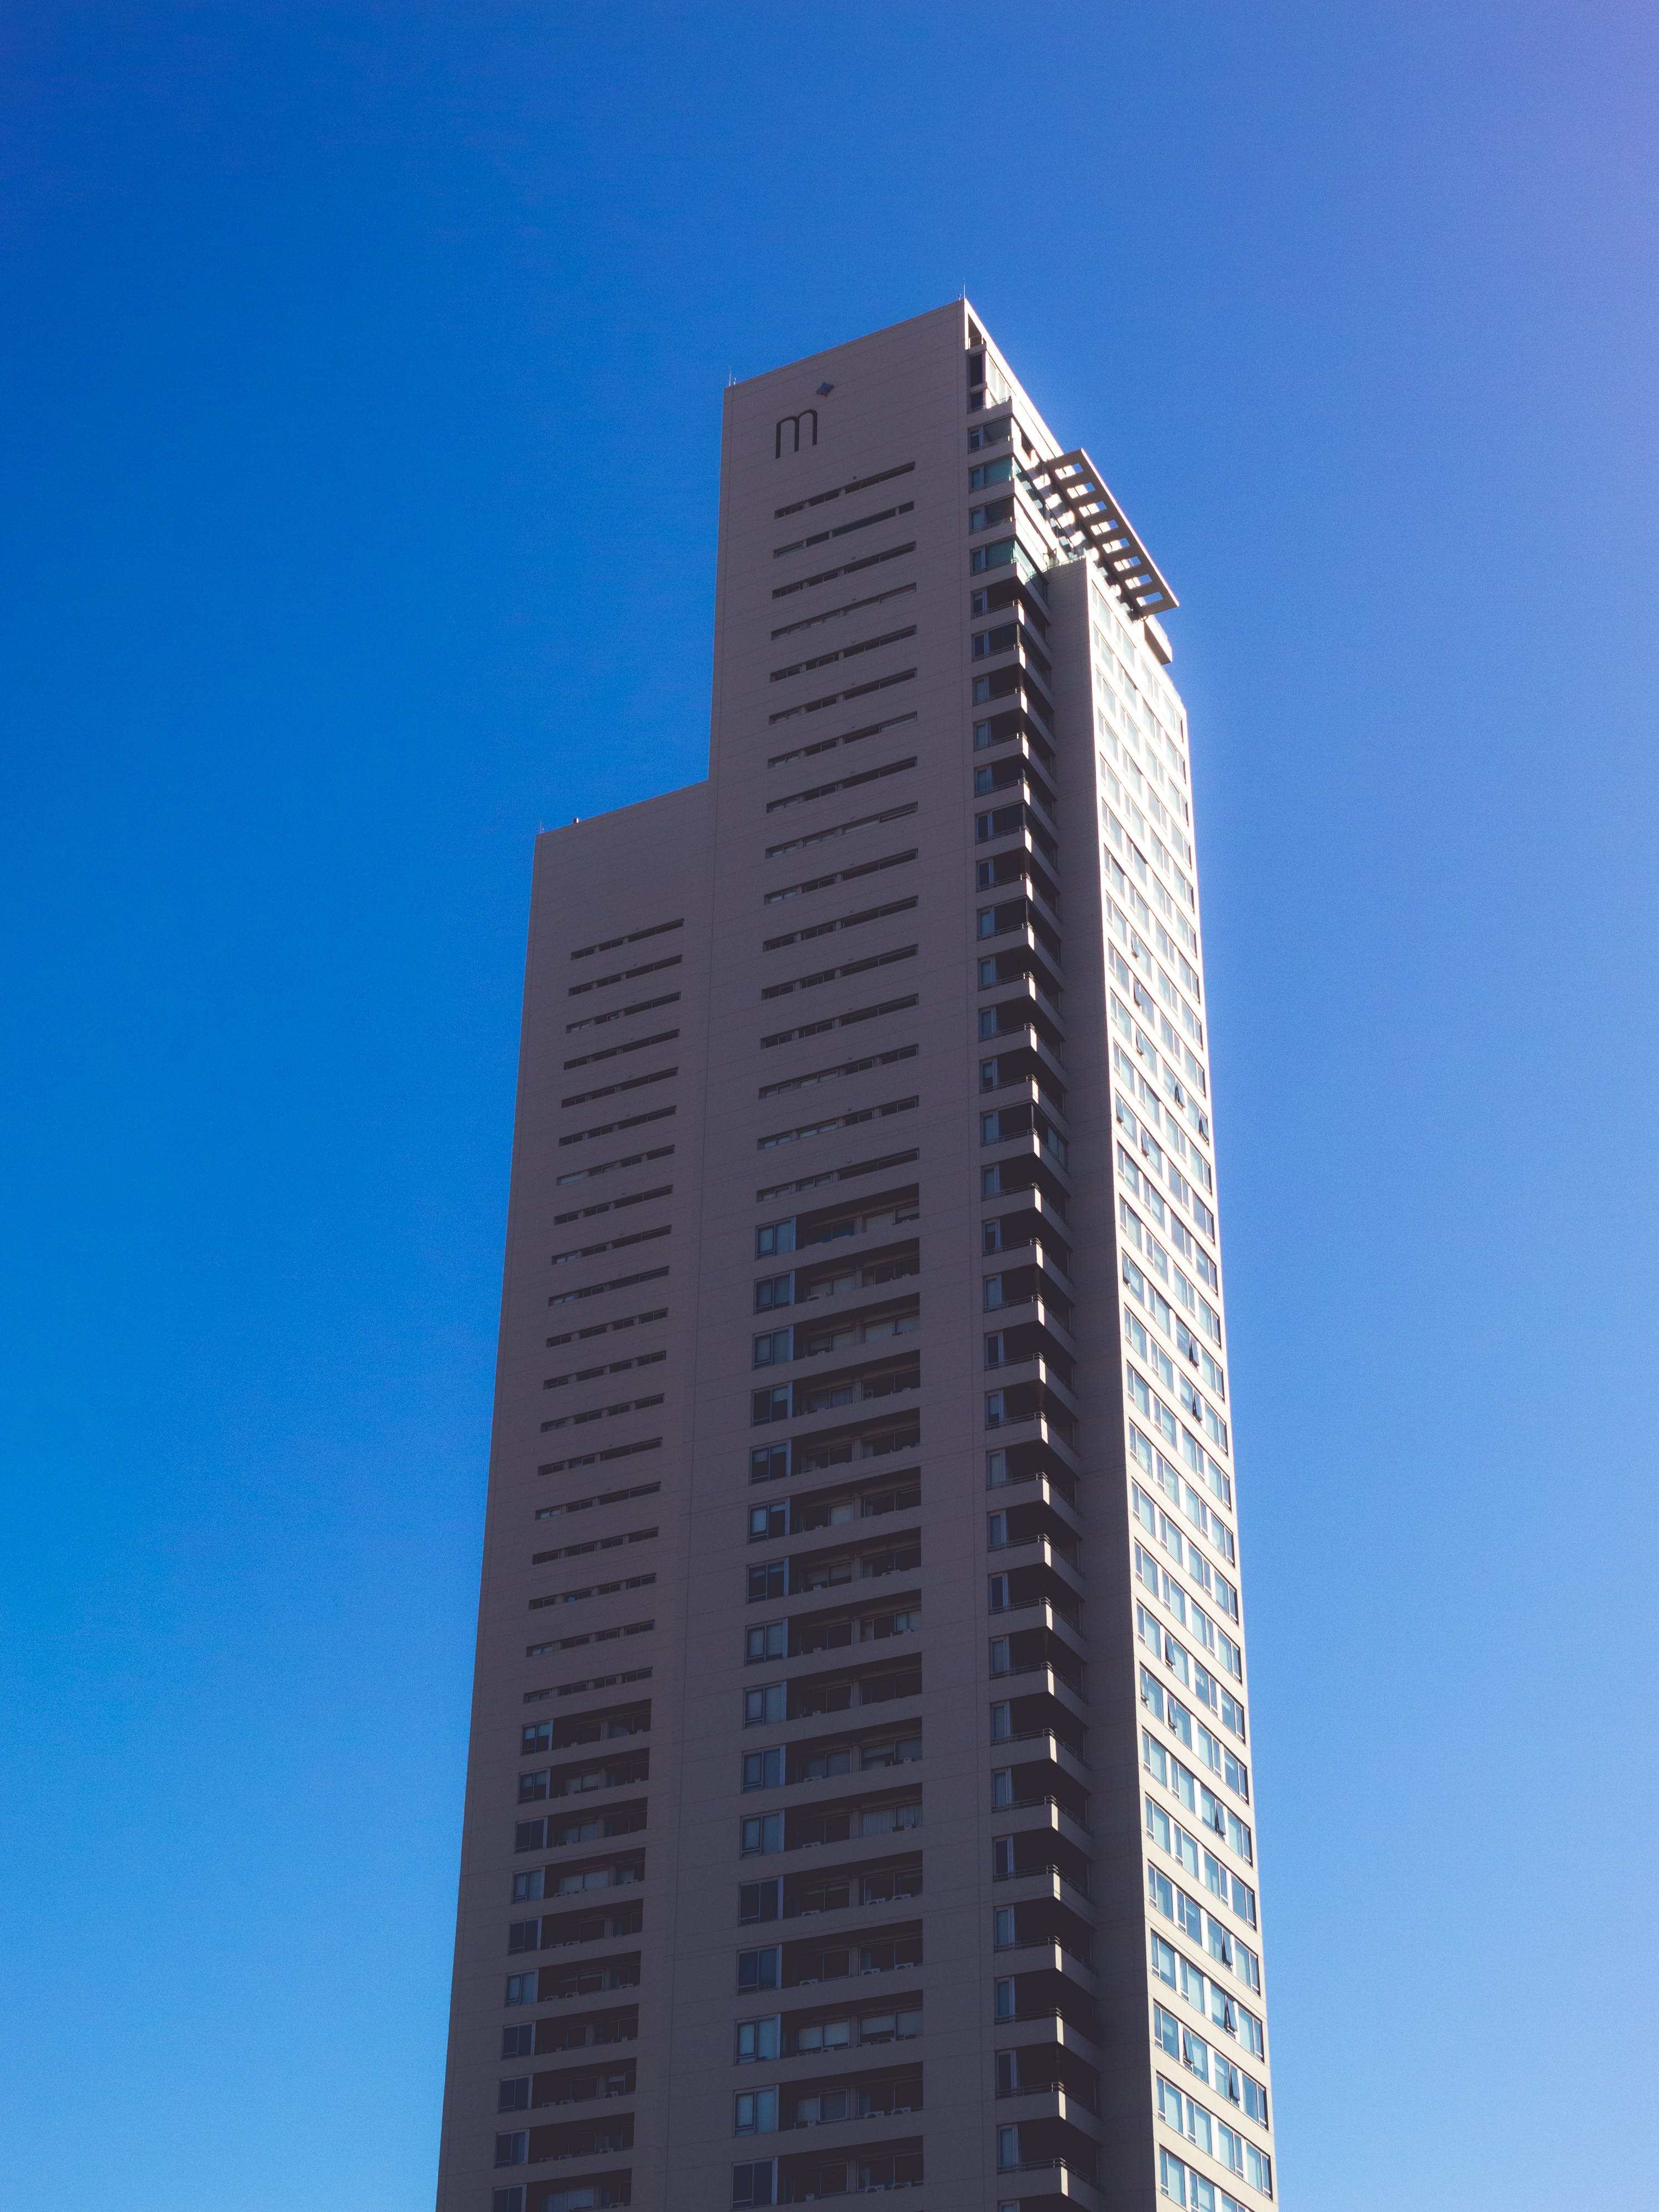 Free stock photo of apartment building, architecture, Buenos Aires, building